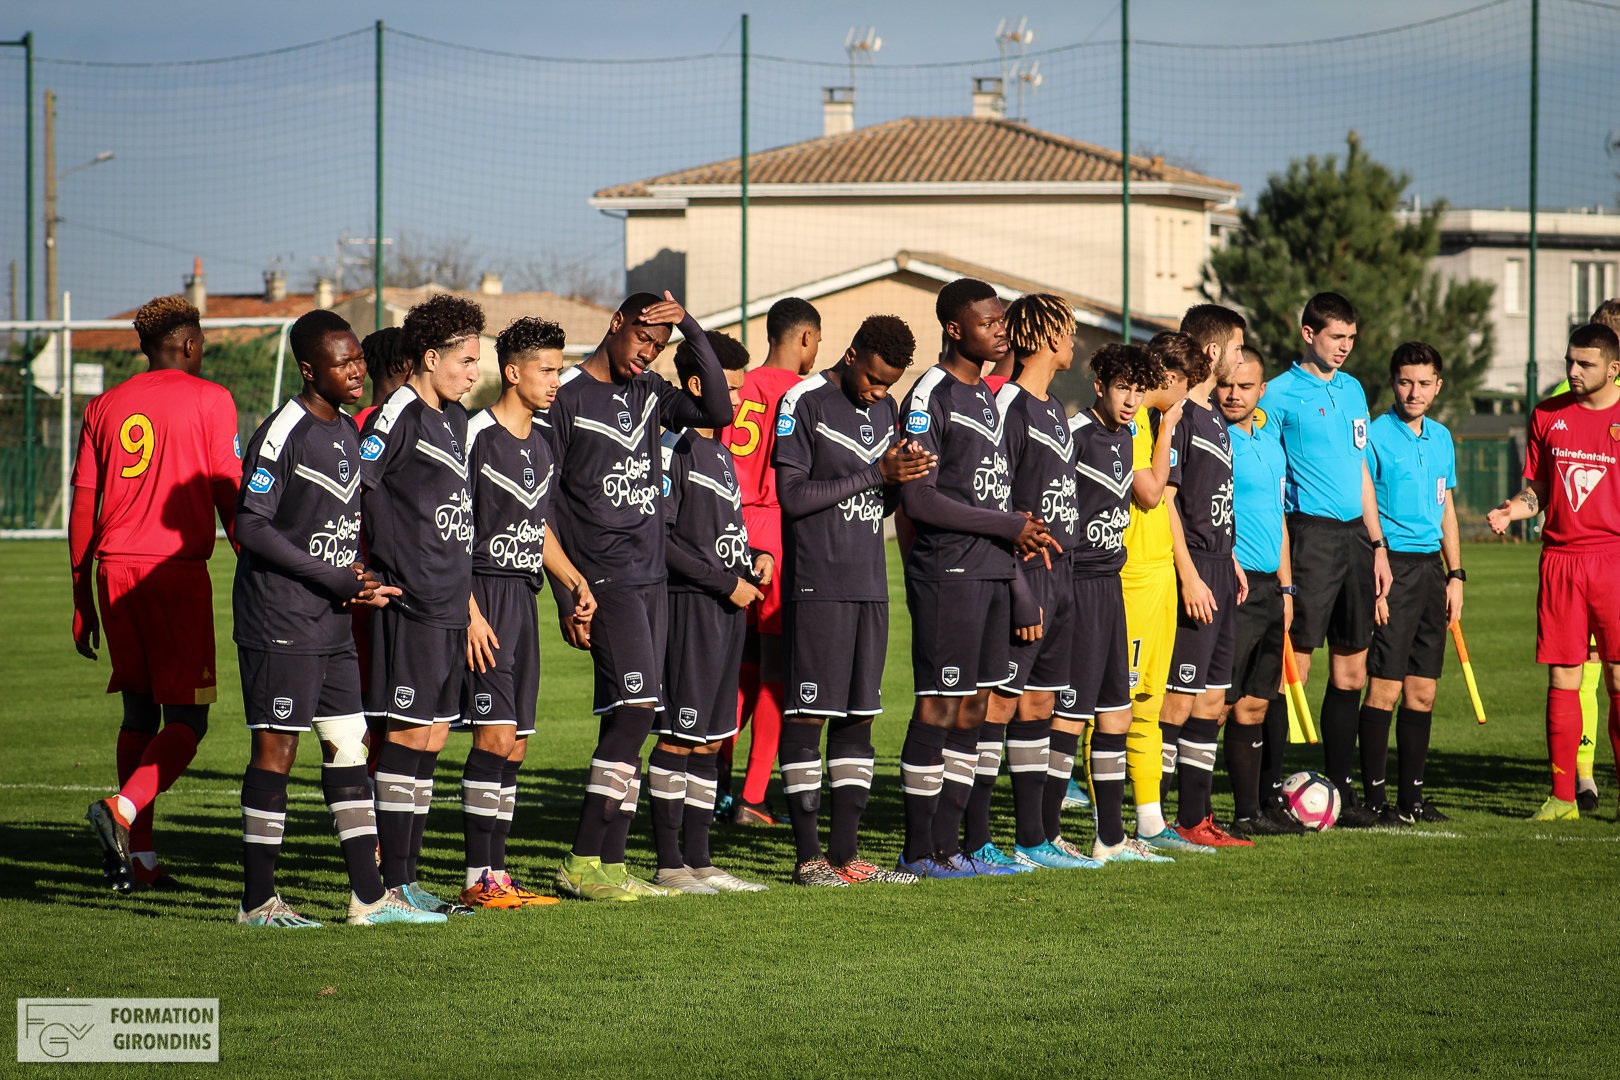 Cfa Girondins : Match amical contre la Real Sociedad  demain - Formation Girondins